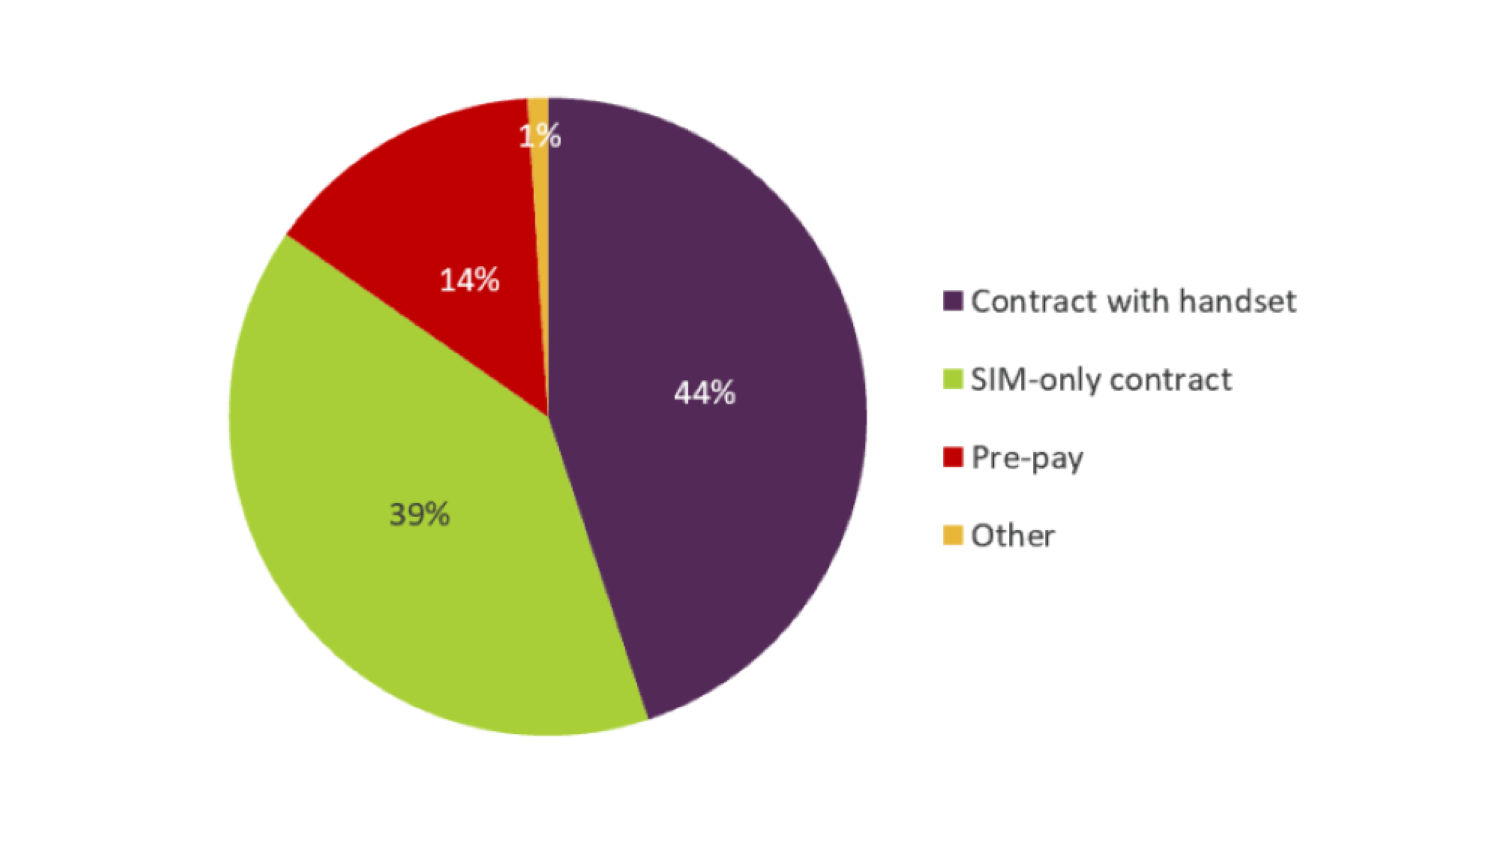 Ofcom report on SIM plans and phone contracts